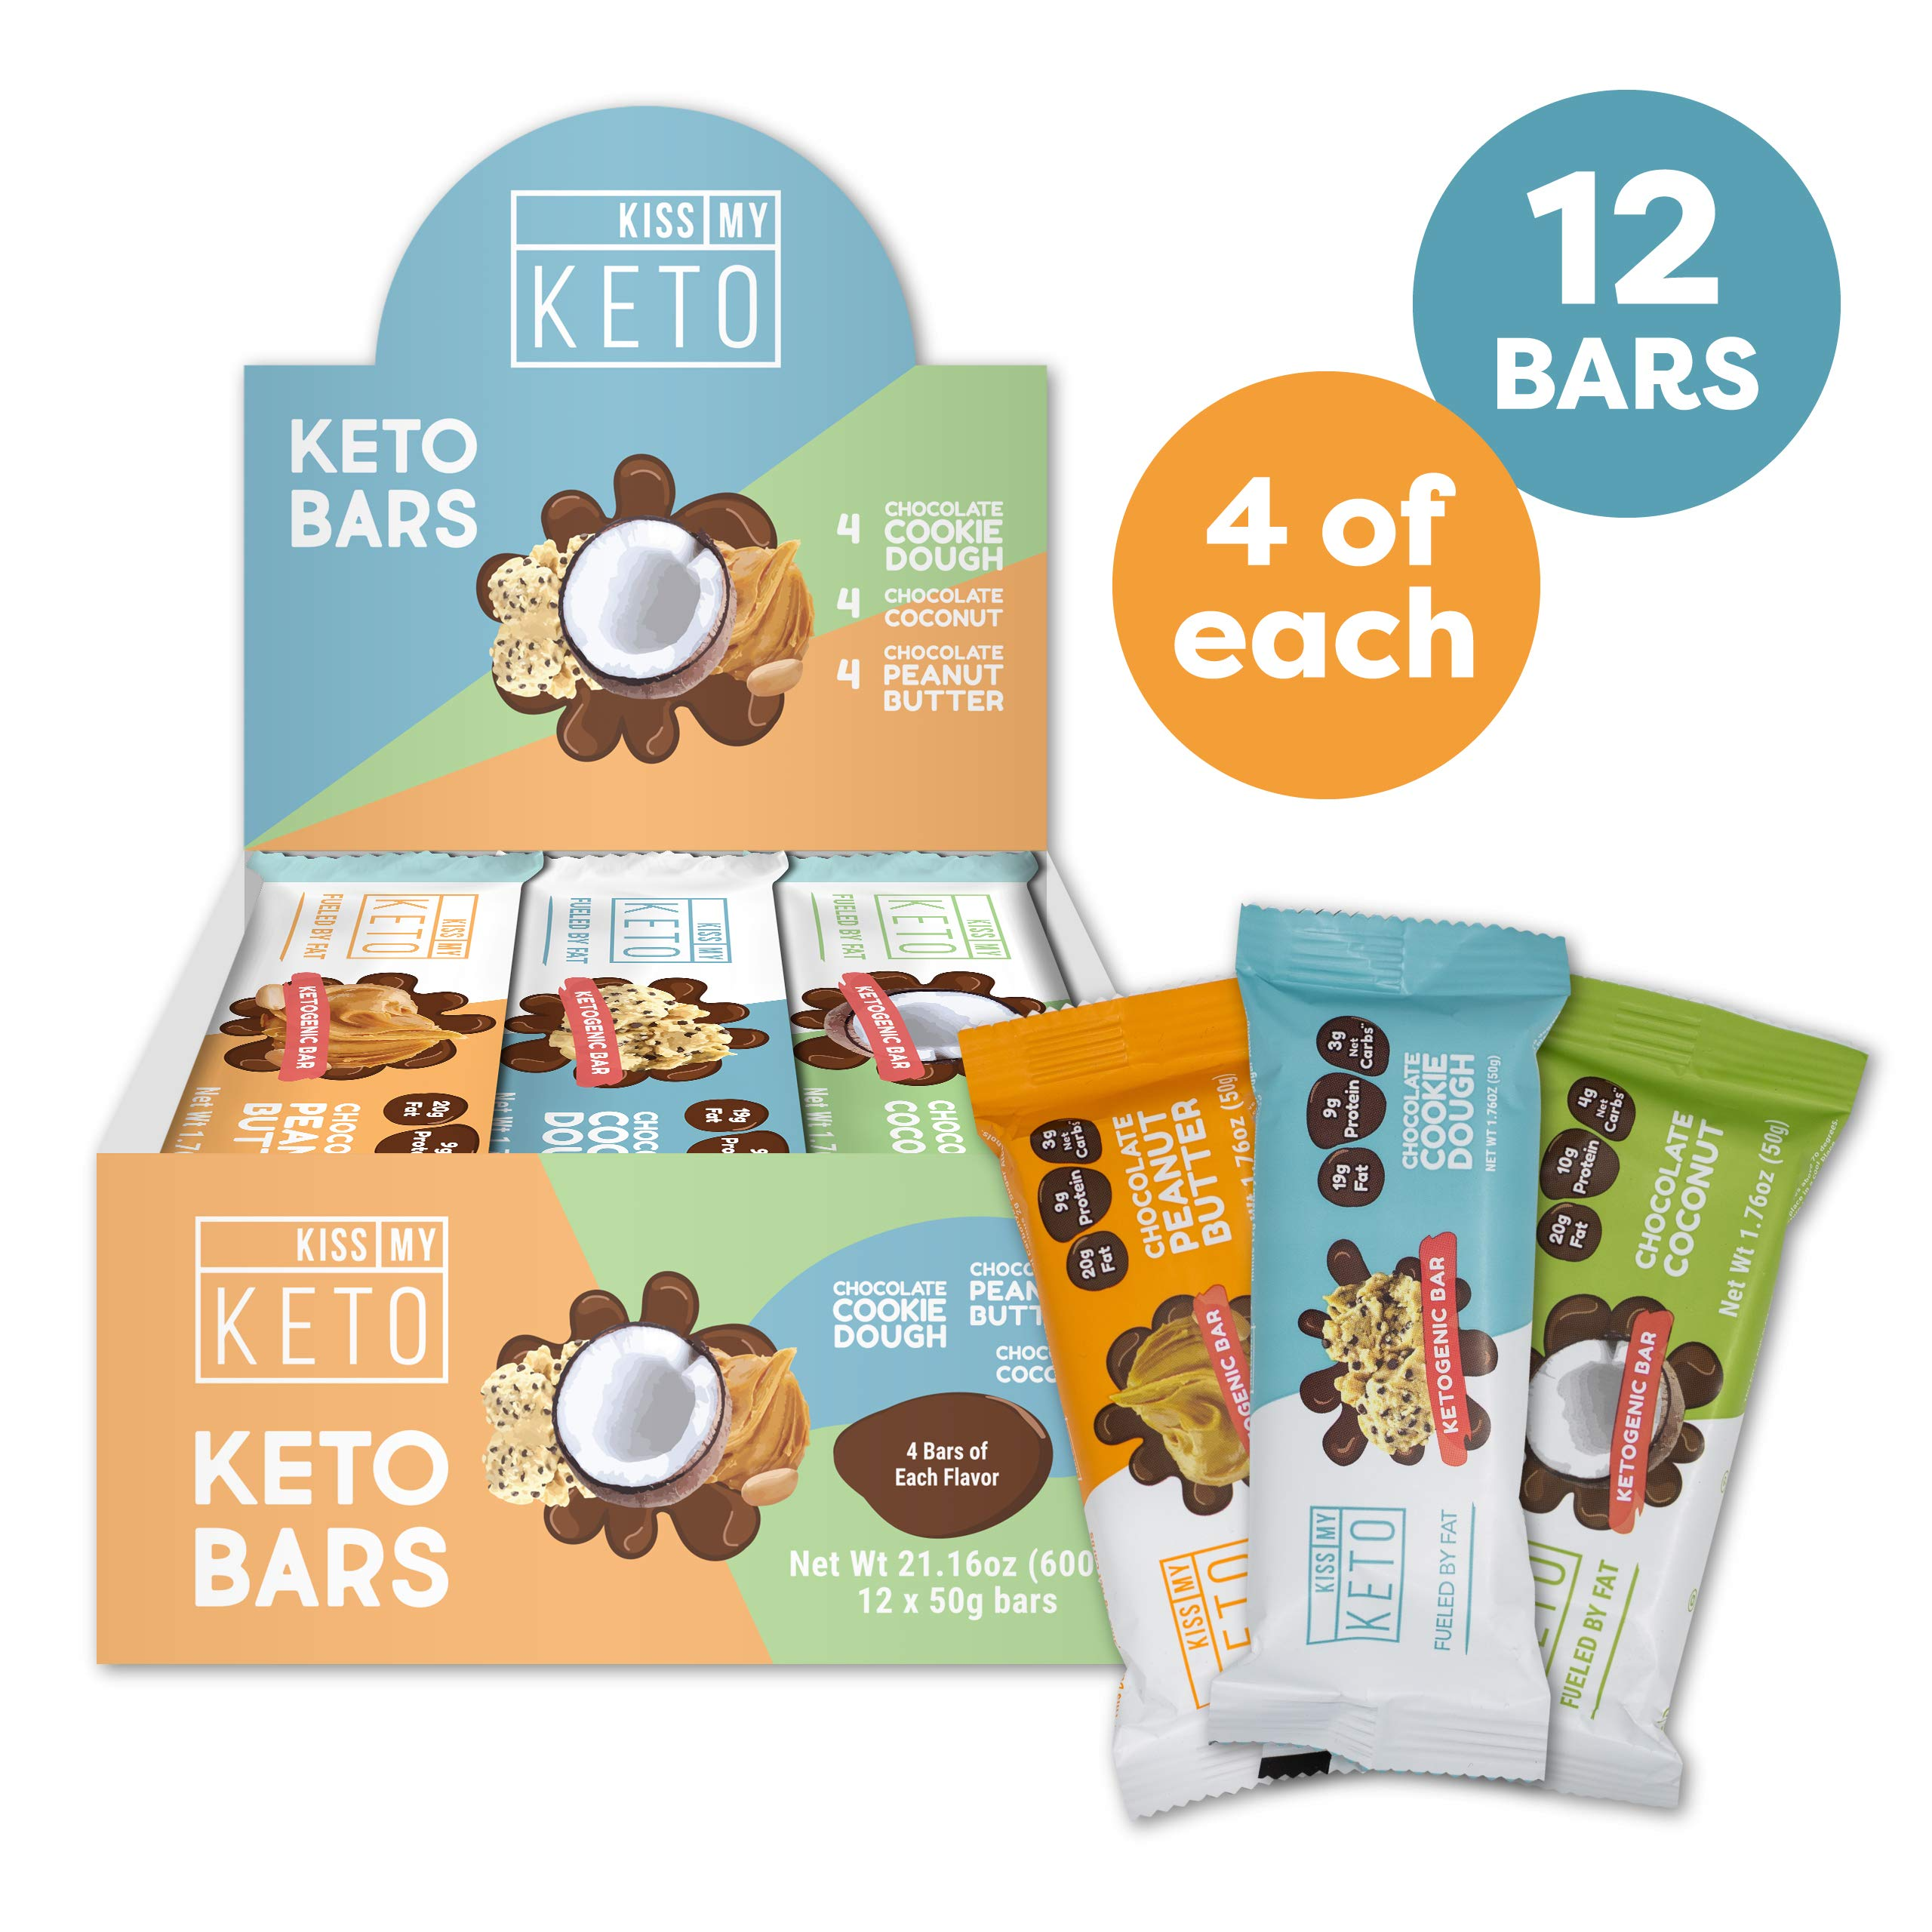 Kiss My Keto Snacks Keto Bars - Keto Chocolate Variety Pack (12) Nutritional Keto Food Bars, Paleo, Low Carb/Glycemic Keto Friendly Foods, Natural On-The-Go Snacks, Quality Fat Bars 3g Net Carbs by Kiss My Keto